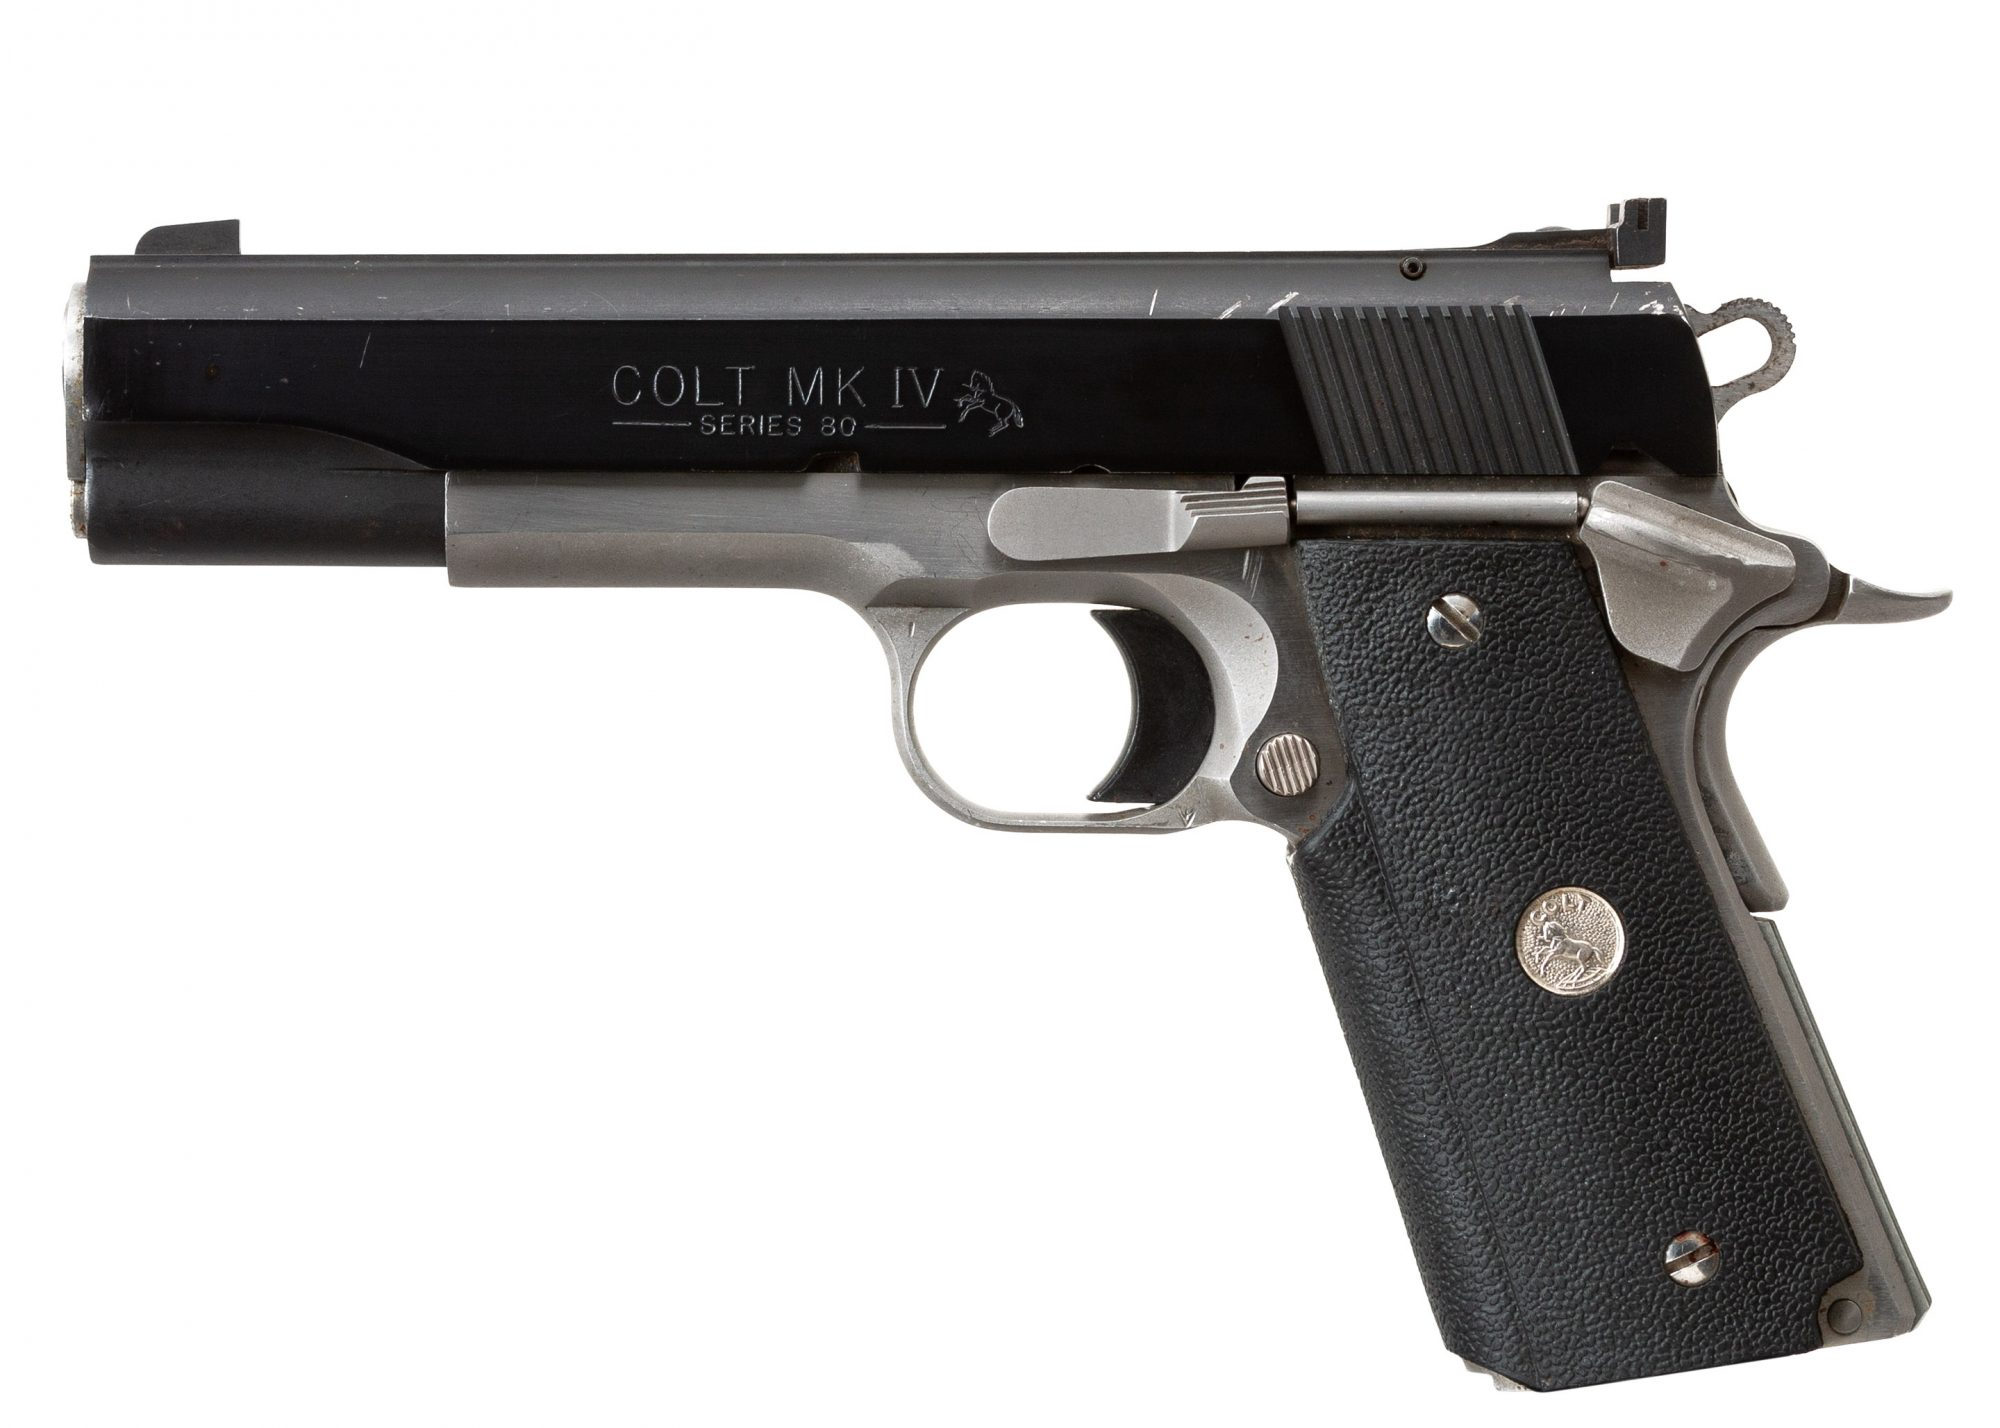 Photo of a pre-owned Colt MK IV Combat Elite, for sale as-is by Turnbull Restoration of Bloomfield, NY